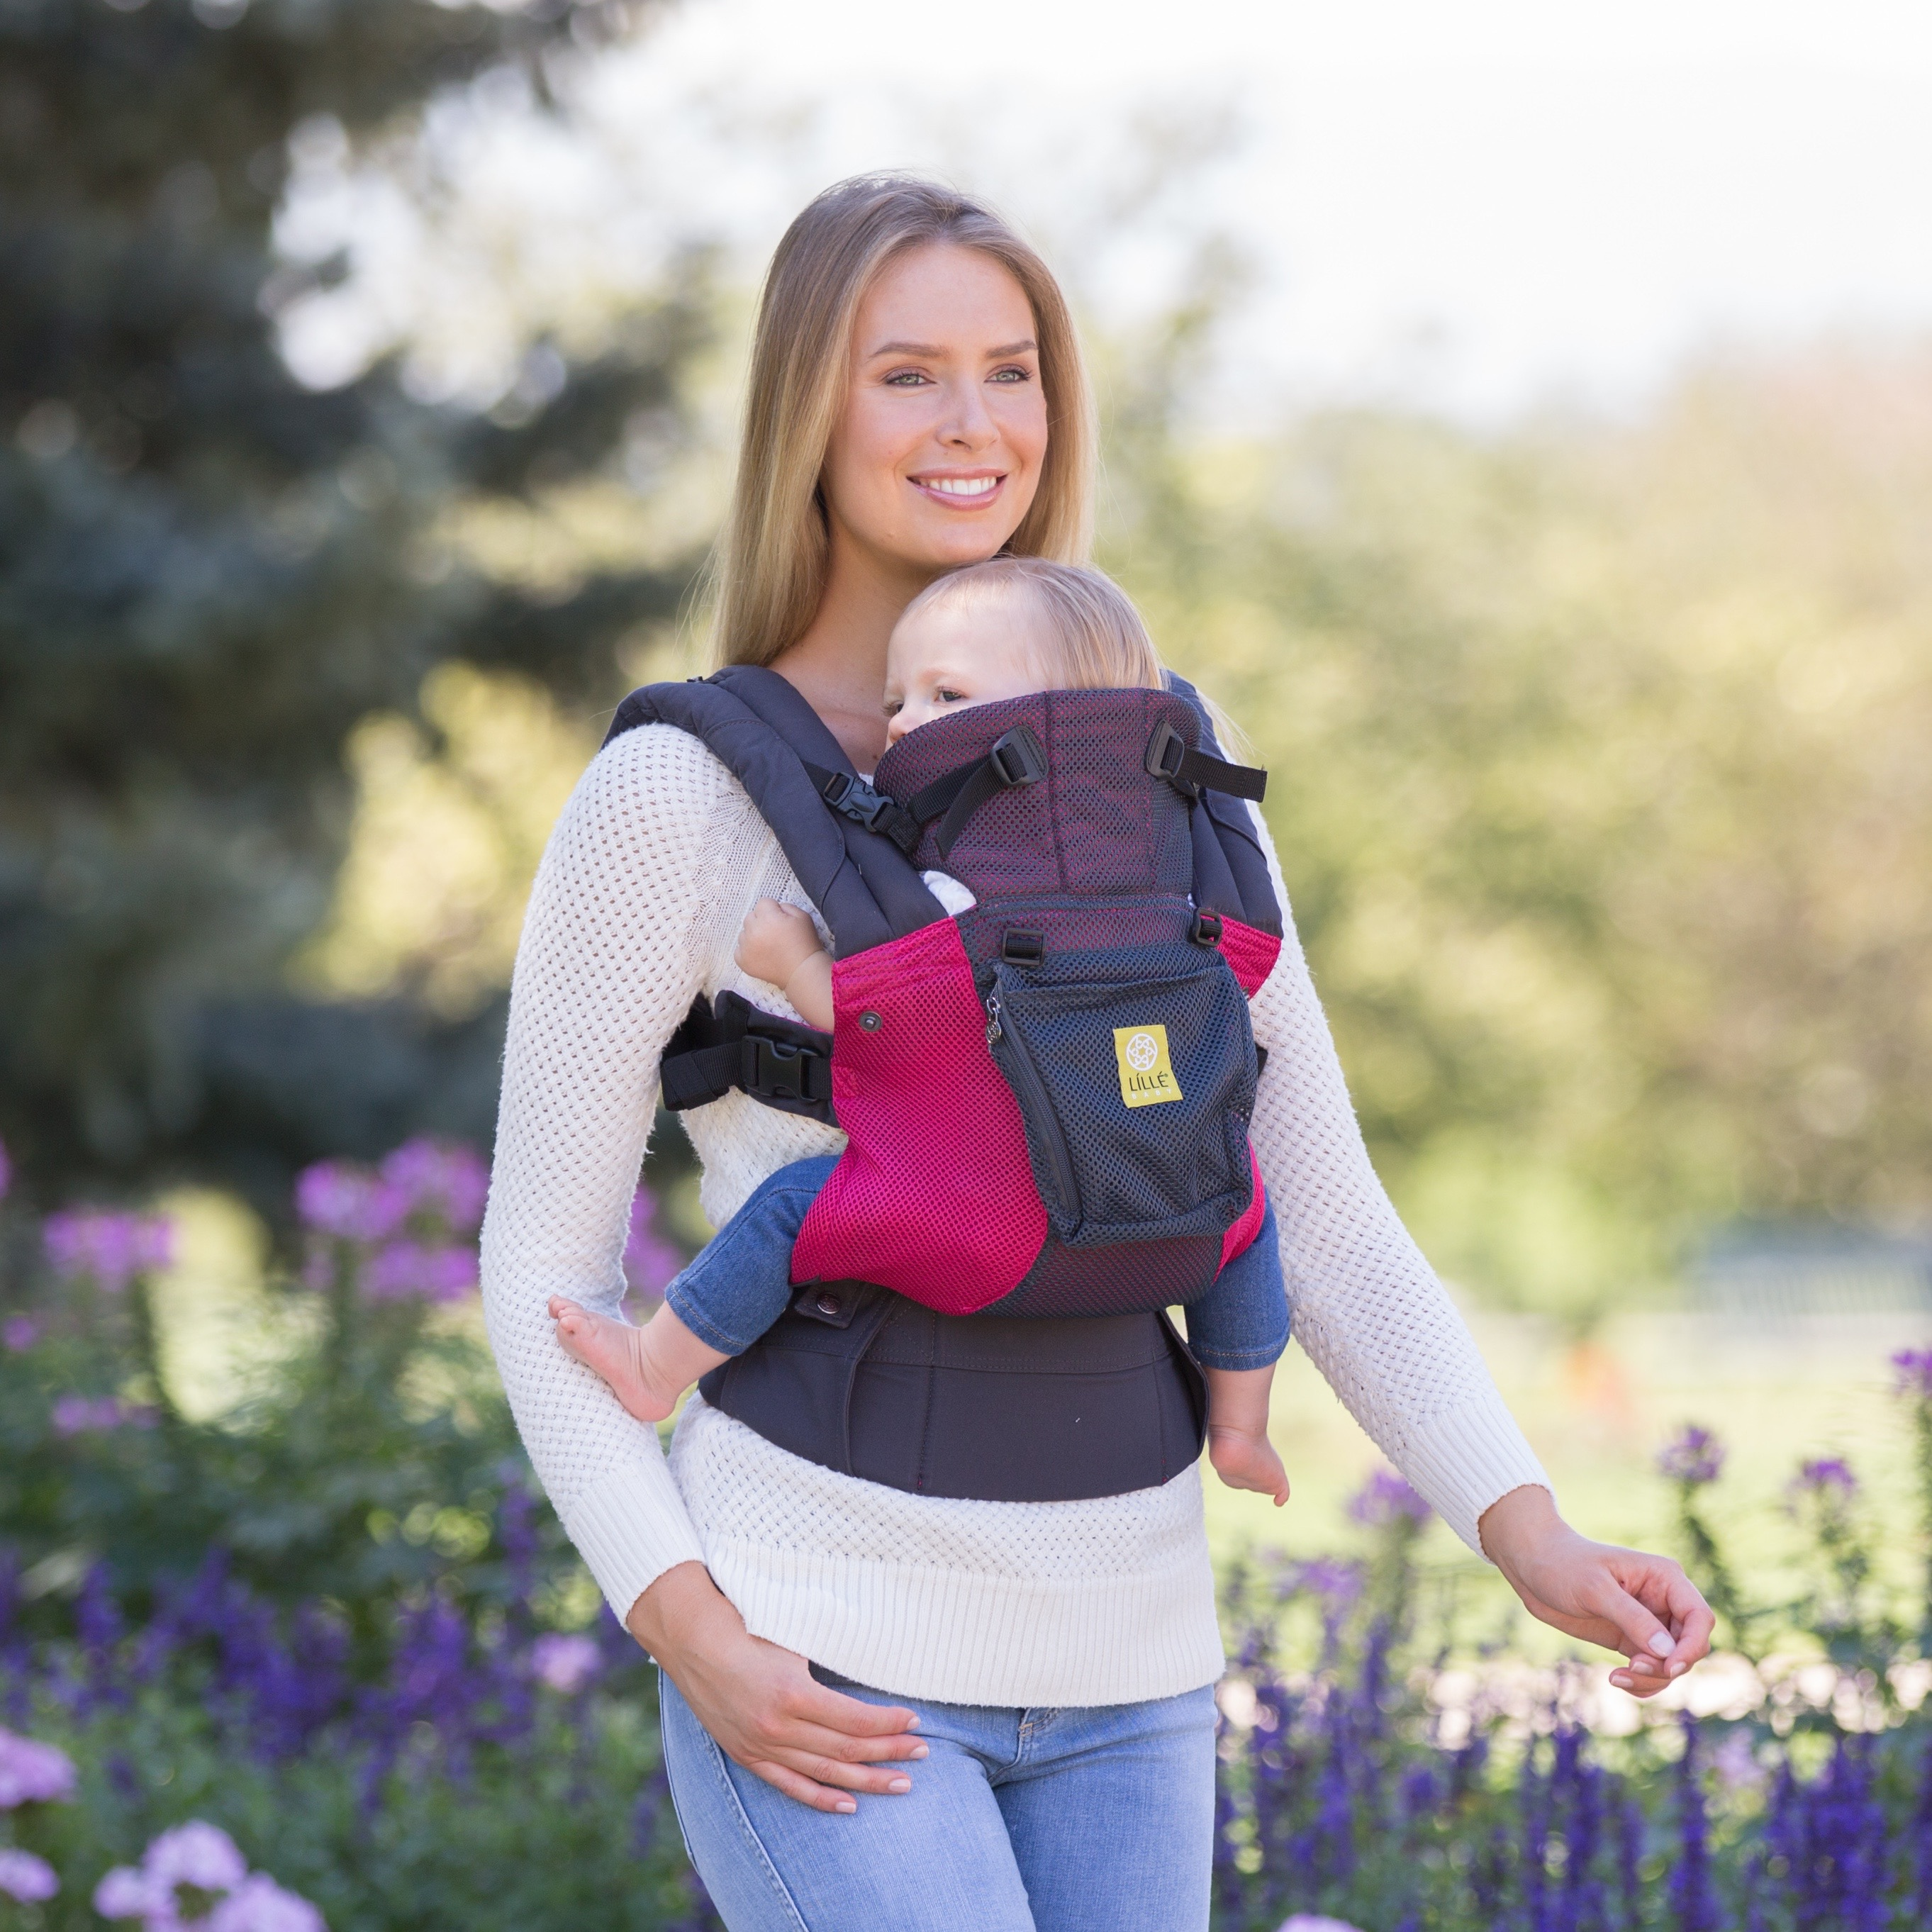 fa7810b89ac LILLEbaby Airflow Baby Carrier - Charcoal with Berry - Walmart.com